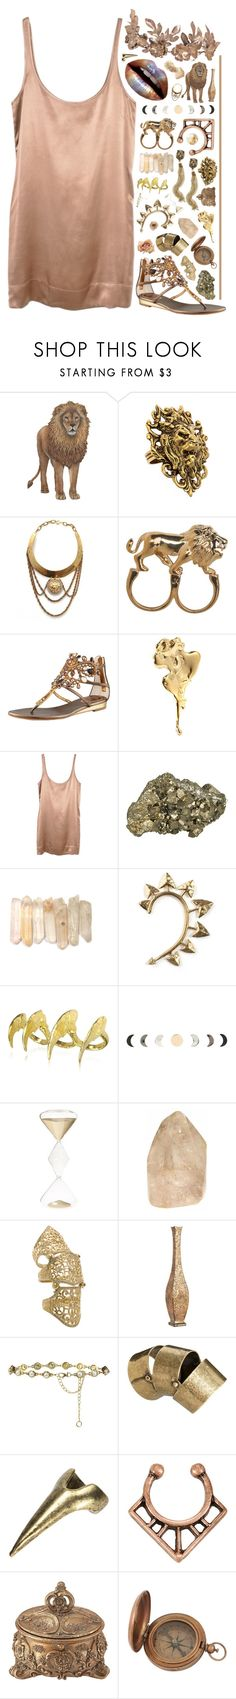 """l e o"" by shattered-tempest ❤ liked on Polyvore featuring Yochi, Stussy, René Caovilla, Jung Ee Eun, Jayson Home, Rachel Entwistle, Bjørg, Hot Topic, Zara Home and Loree Rodkin"